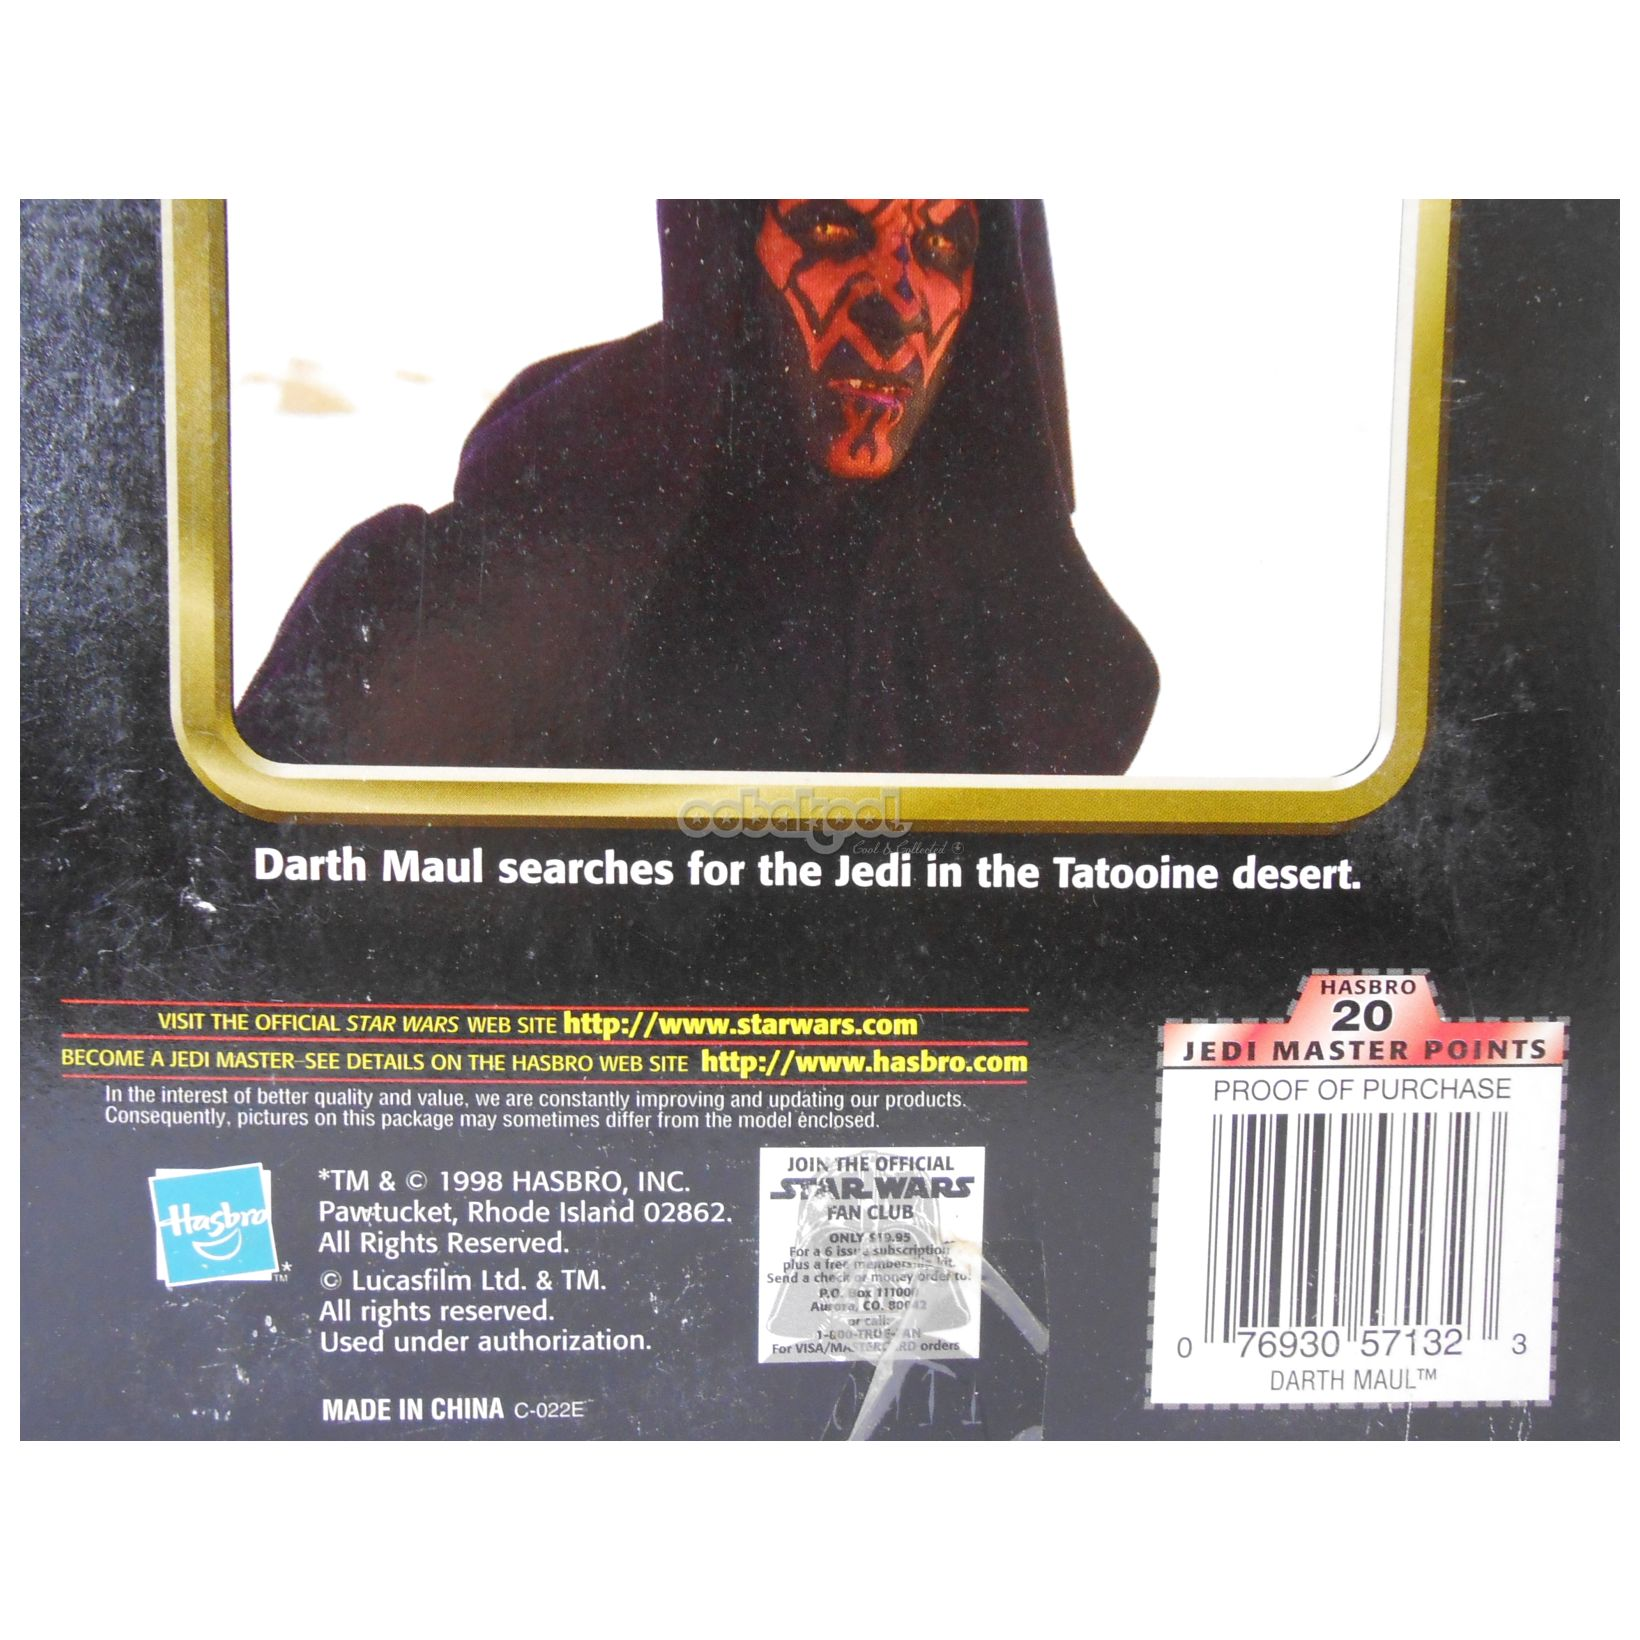 Star Wars / Darth Maul Episode 1 Collection 1998 Hasbro 12 Inch Poseable Figure Nib